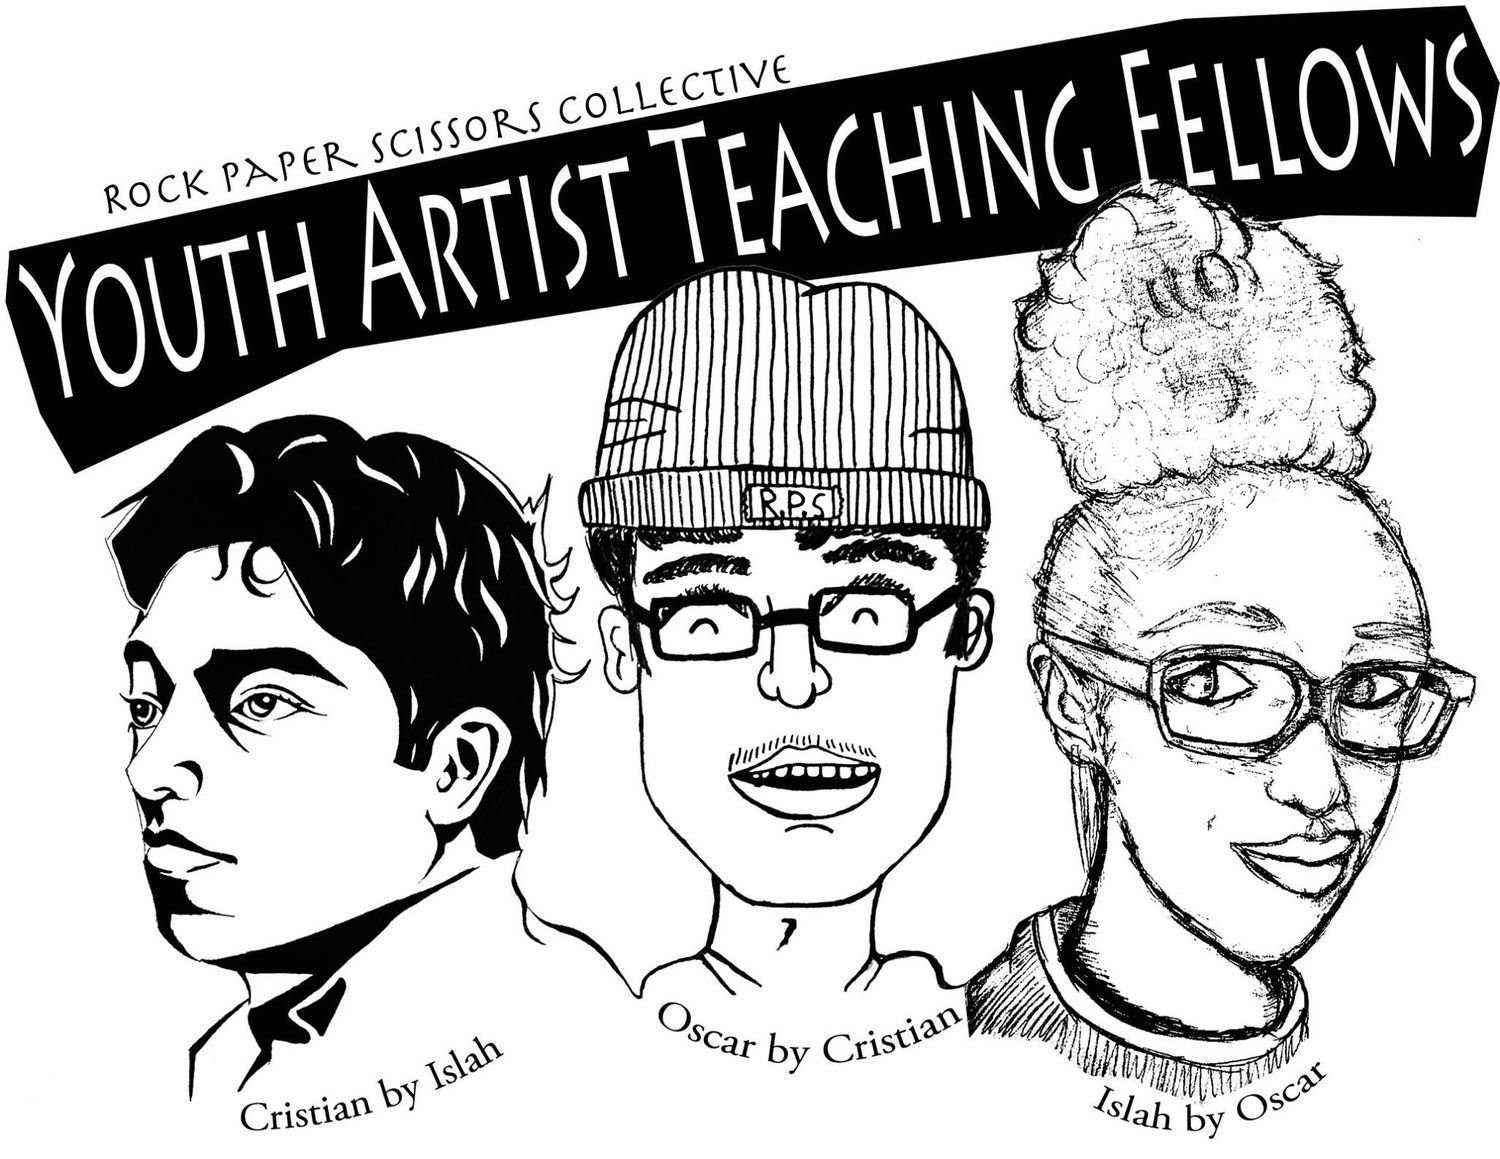 RPSC+Youth+Artist+Teaching+Fellows+2017.jpg